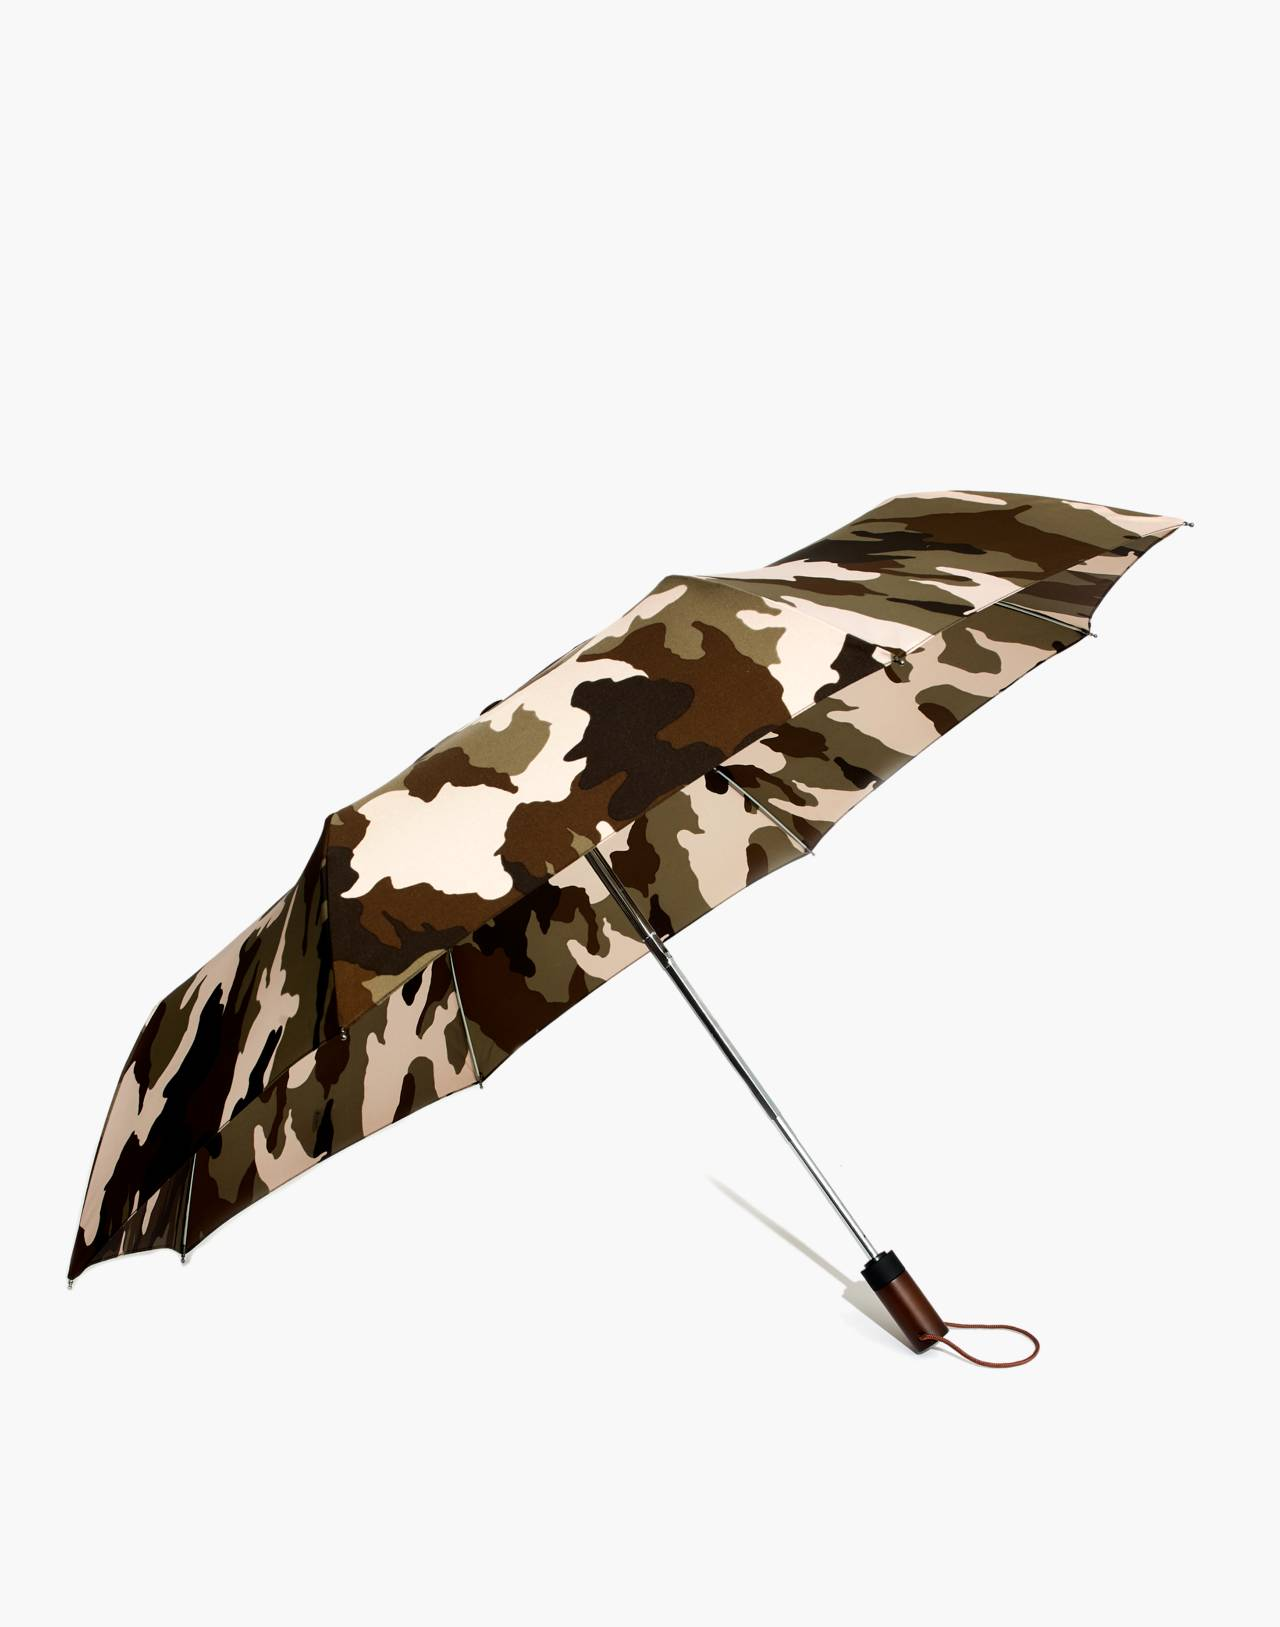 Rainy-Day Umbrella in camo image 1